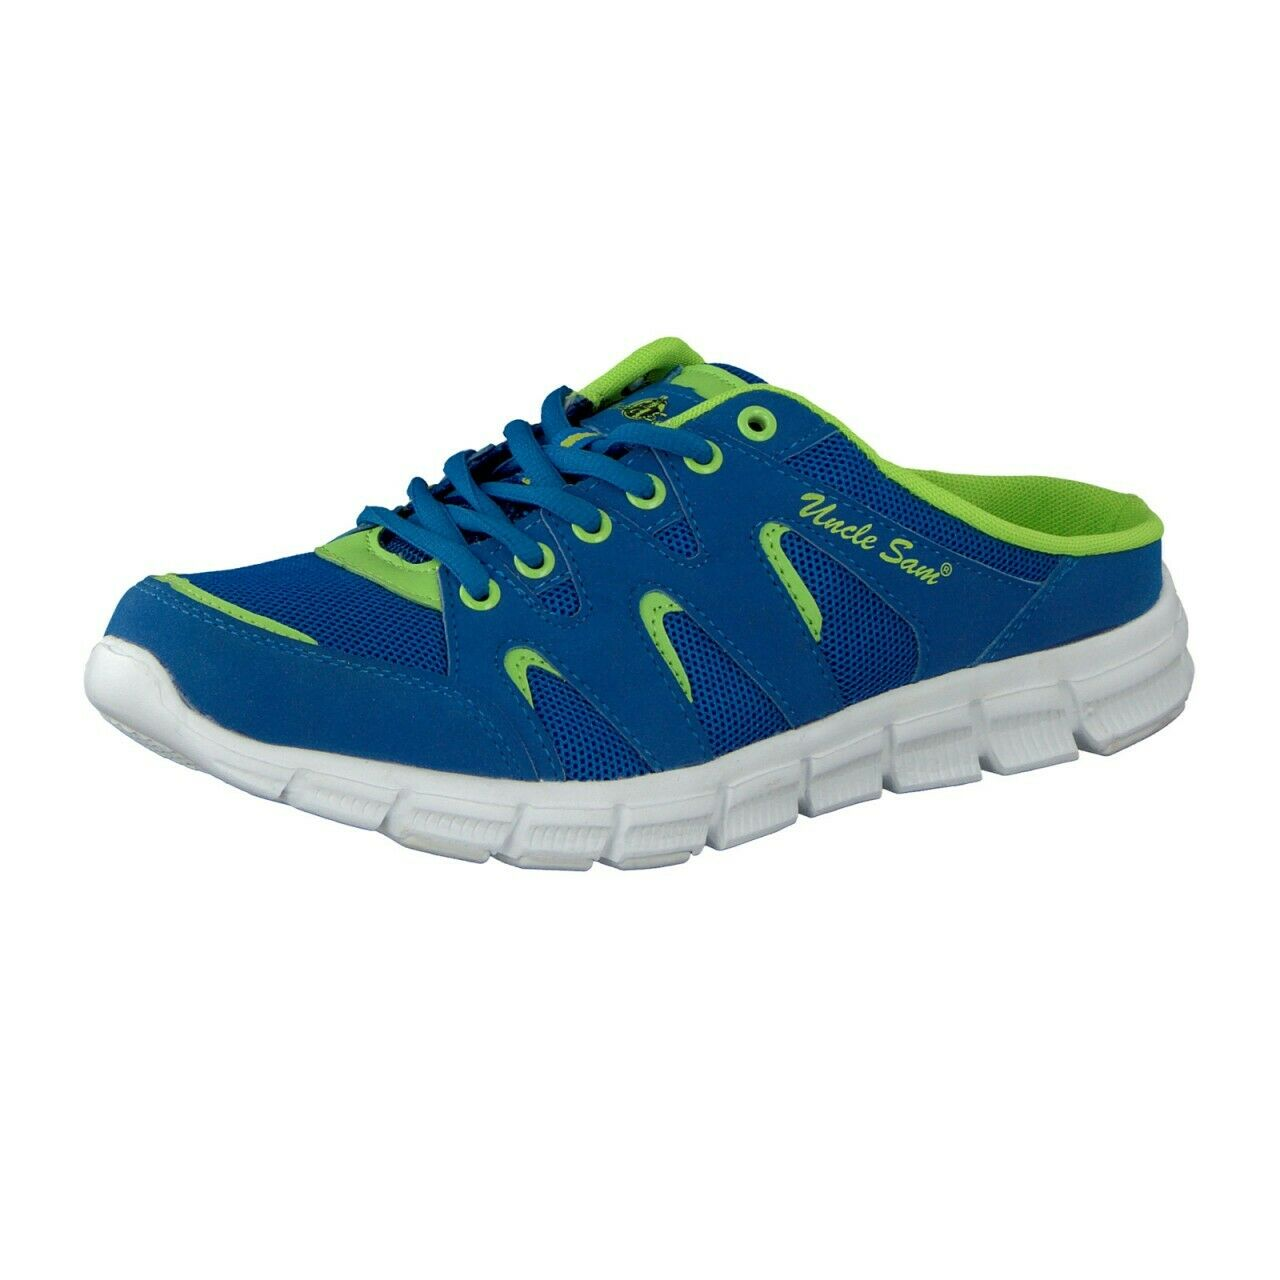 Uncle Sam Men's Sneakers Fashion Sabot in Light bluee